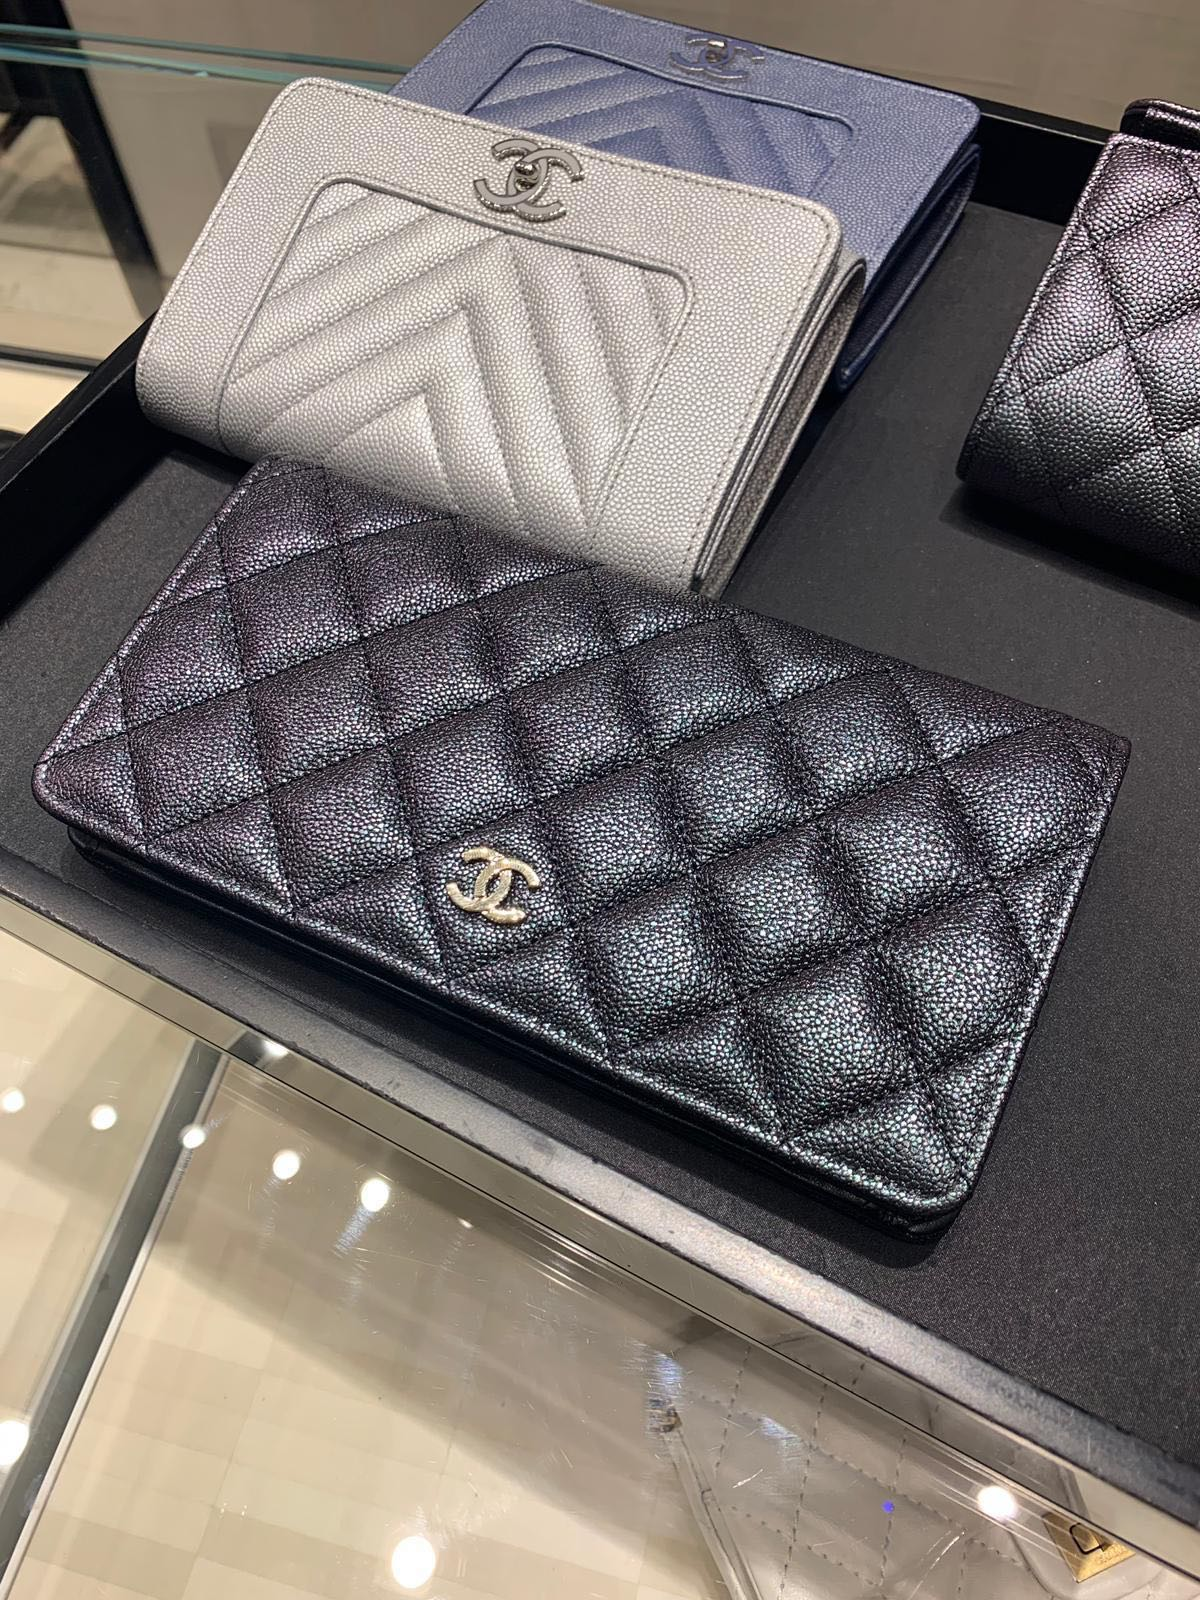 5cb08d3b0e45 Chanel 19S Classic Yen Wallet - iridescent black (limited edition), Luxury,  Bags & Wallets, Wallets on Carousell